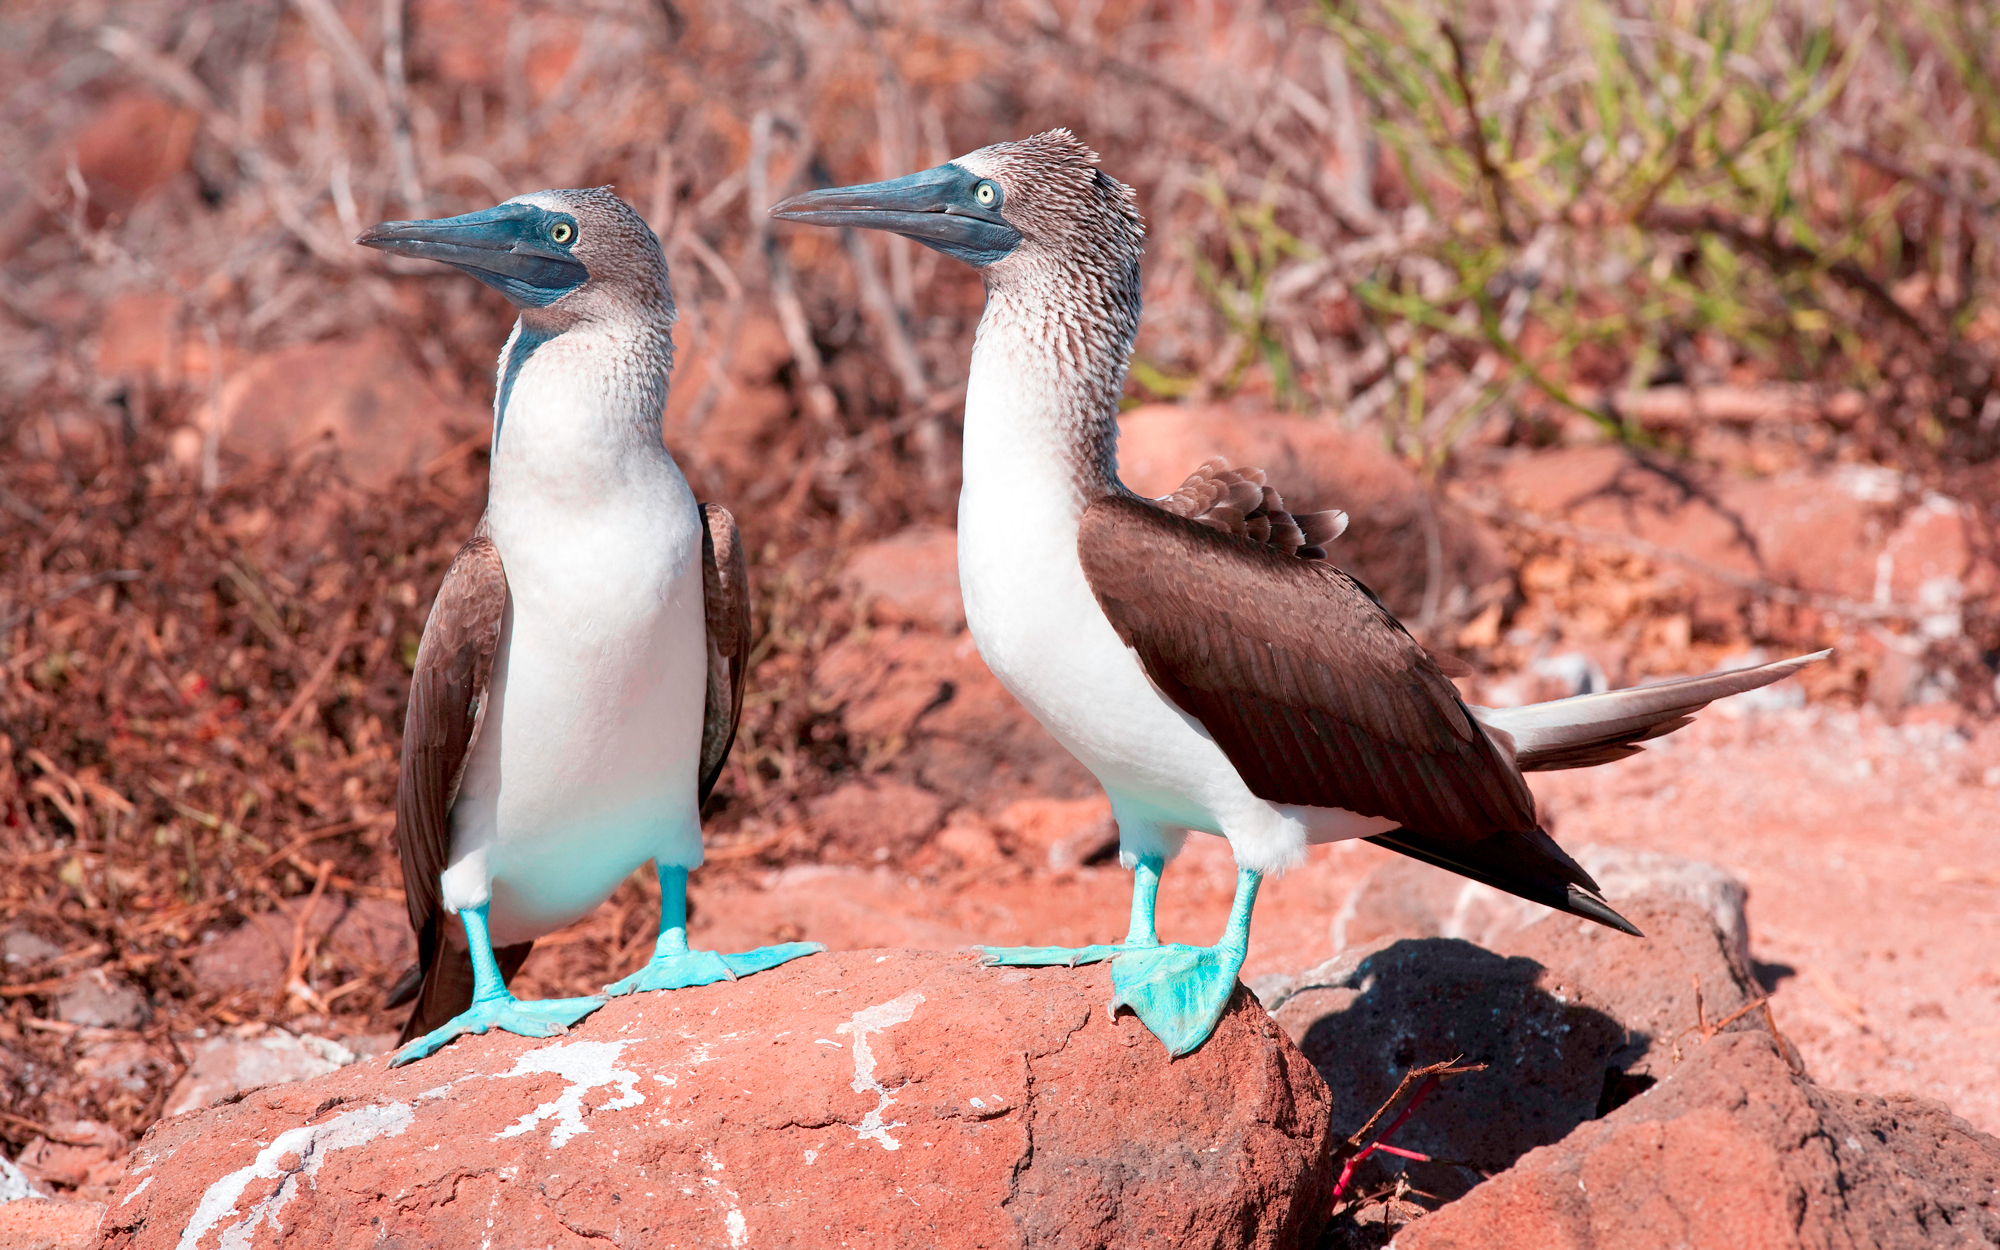 Blue-footed Booby Sula, Nebouxi, North Seymour Island Galapagos Islands